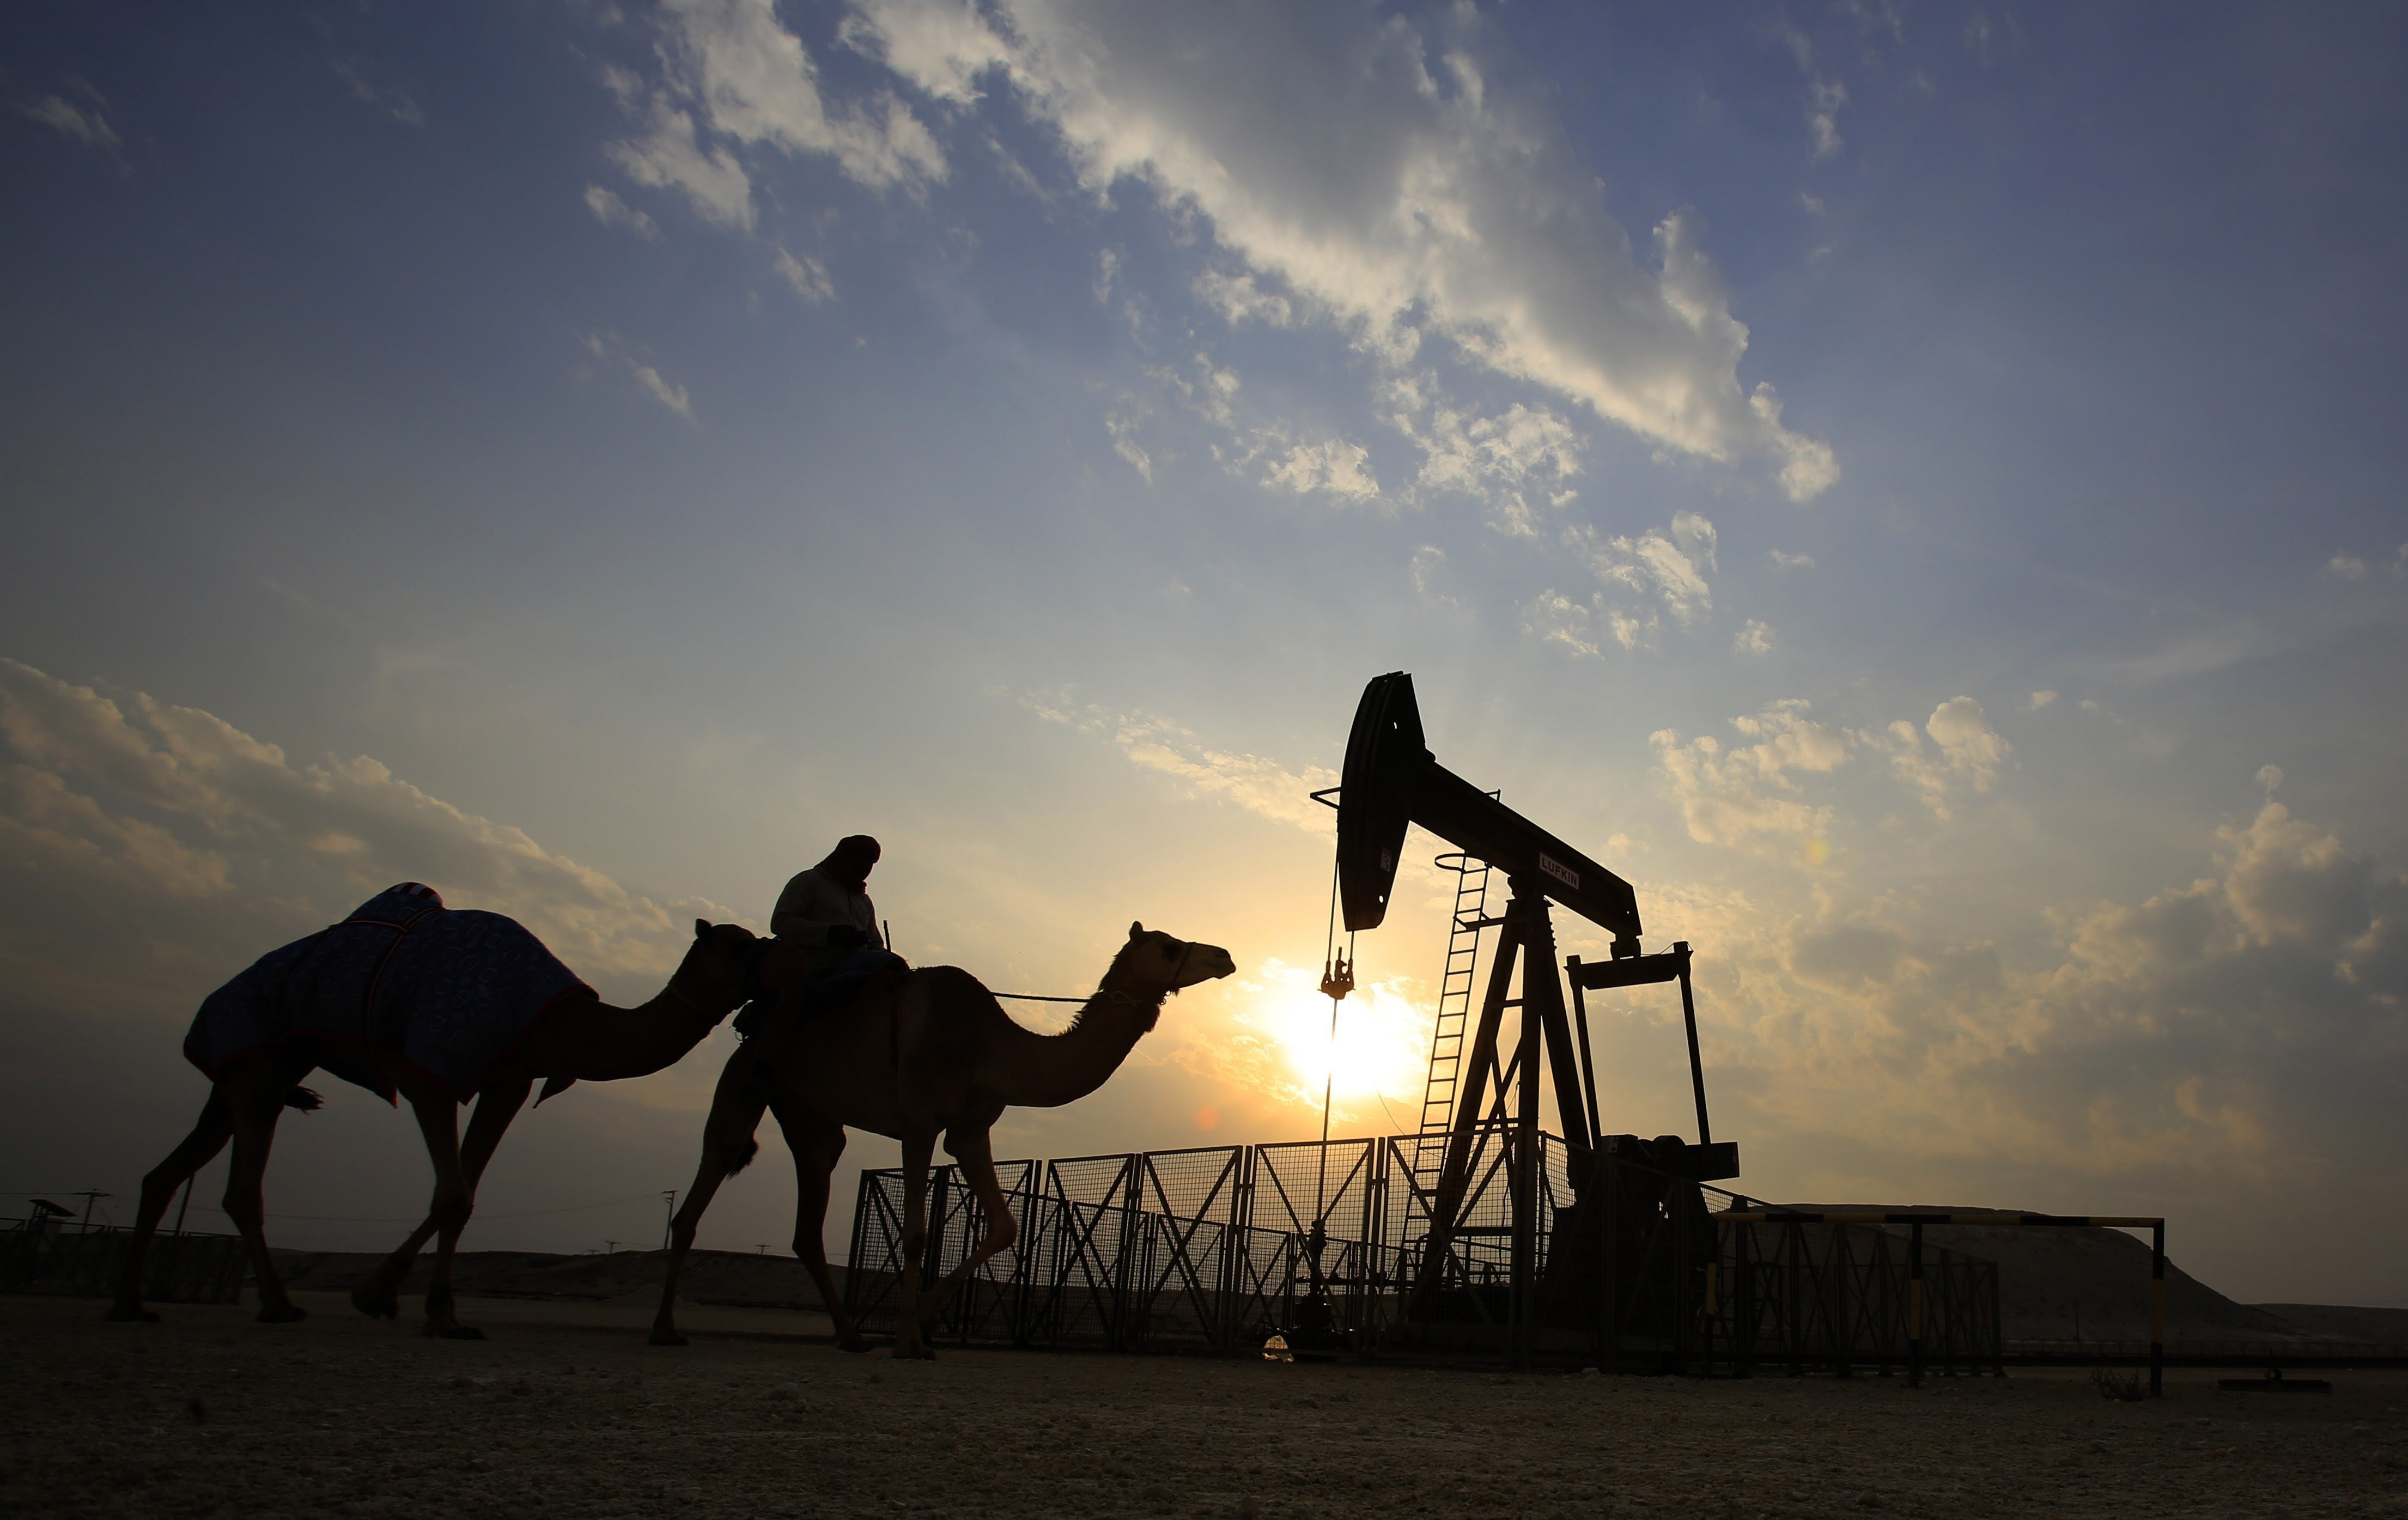 A man rides a camel through the desert oil field and winter camping area of Sakhir, Bahrain. OPEC said production decreased in March by 153,000 barrels a day to an average of 31.93 million barrels a day.